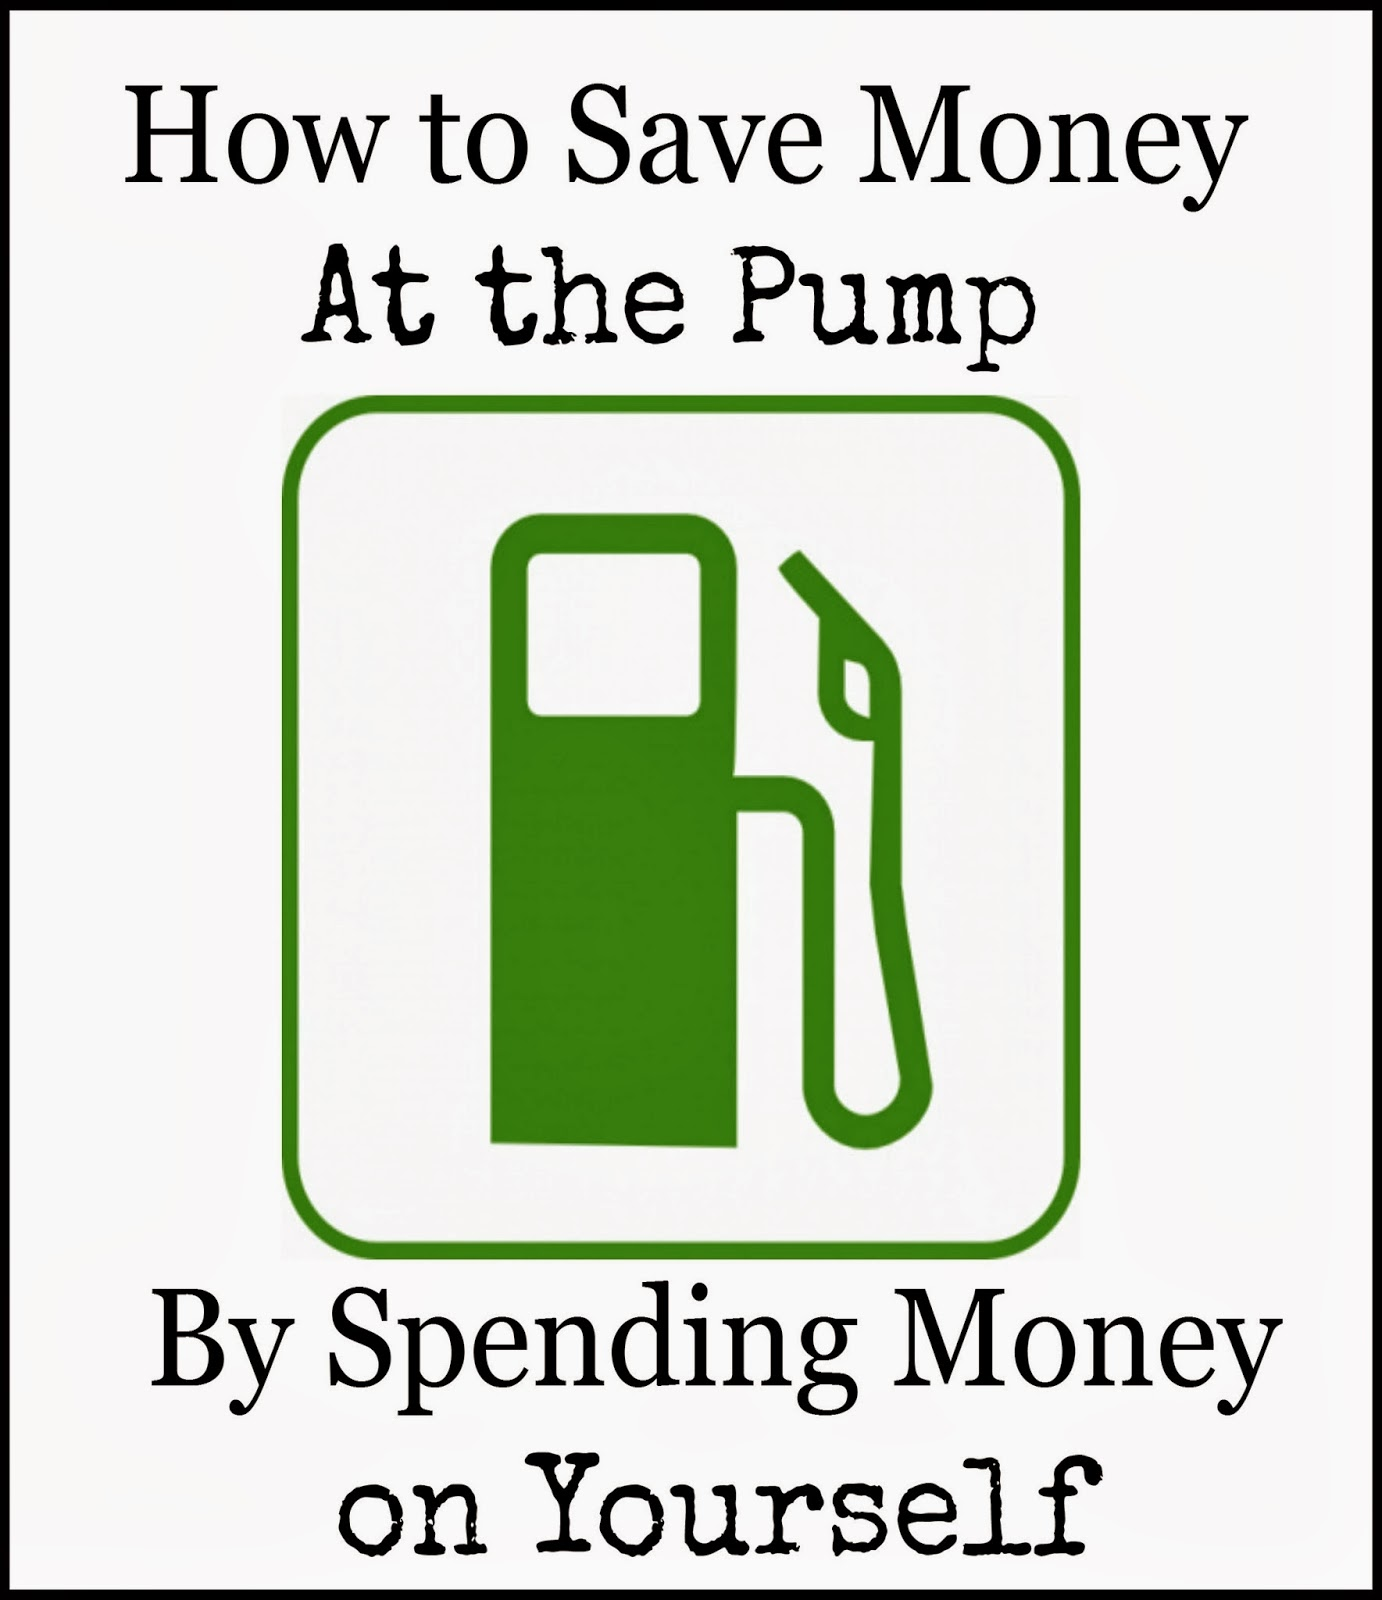 How to Save Money at the Pump